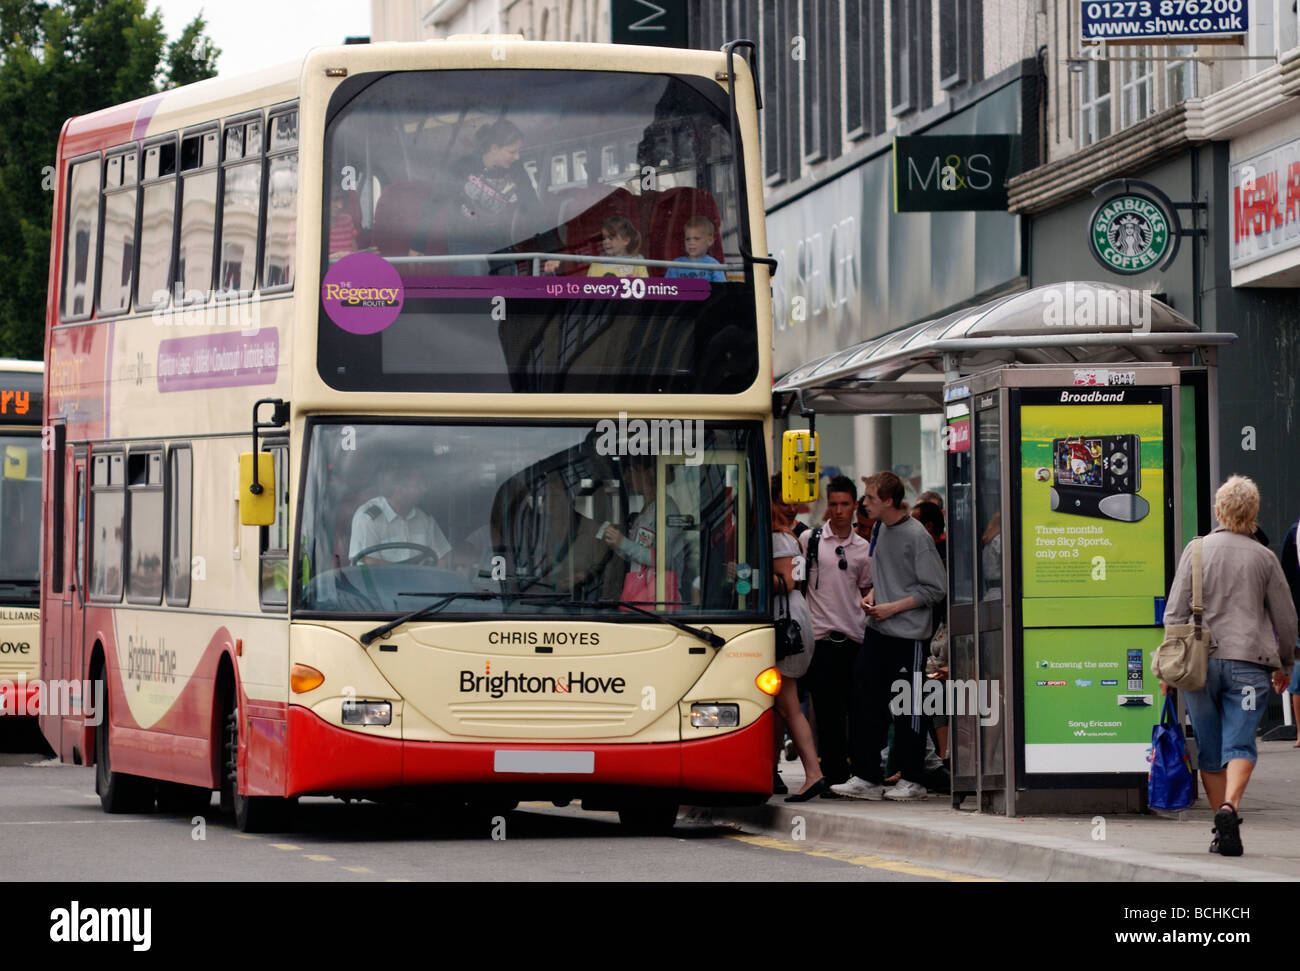 Double decker bus pulling into busy bus stop - Stock Image